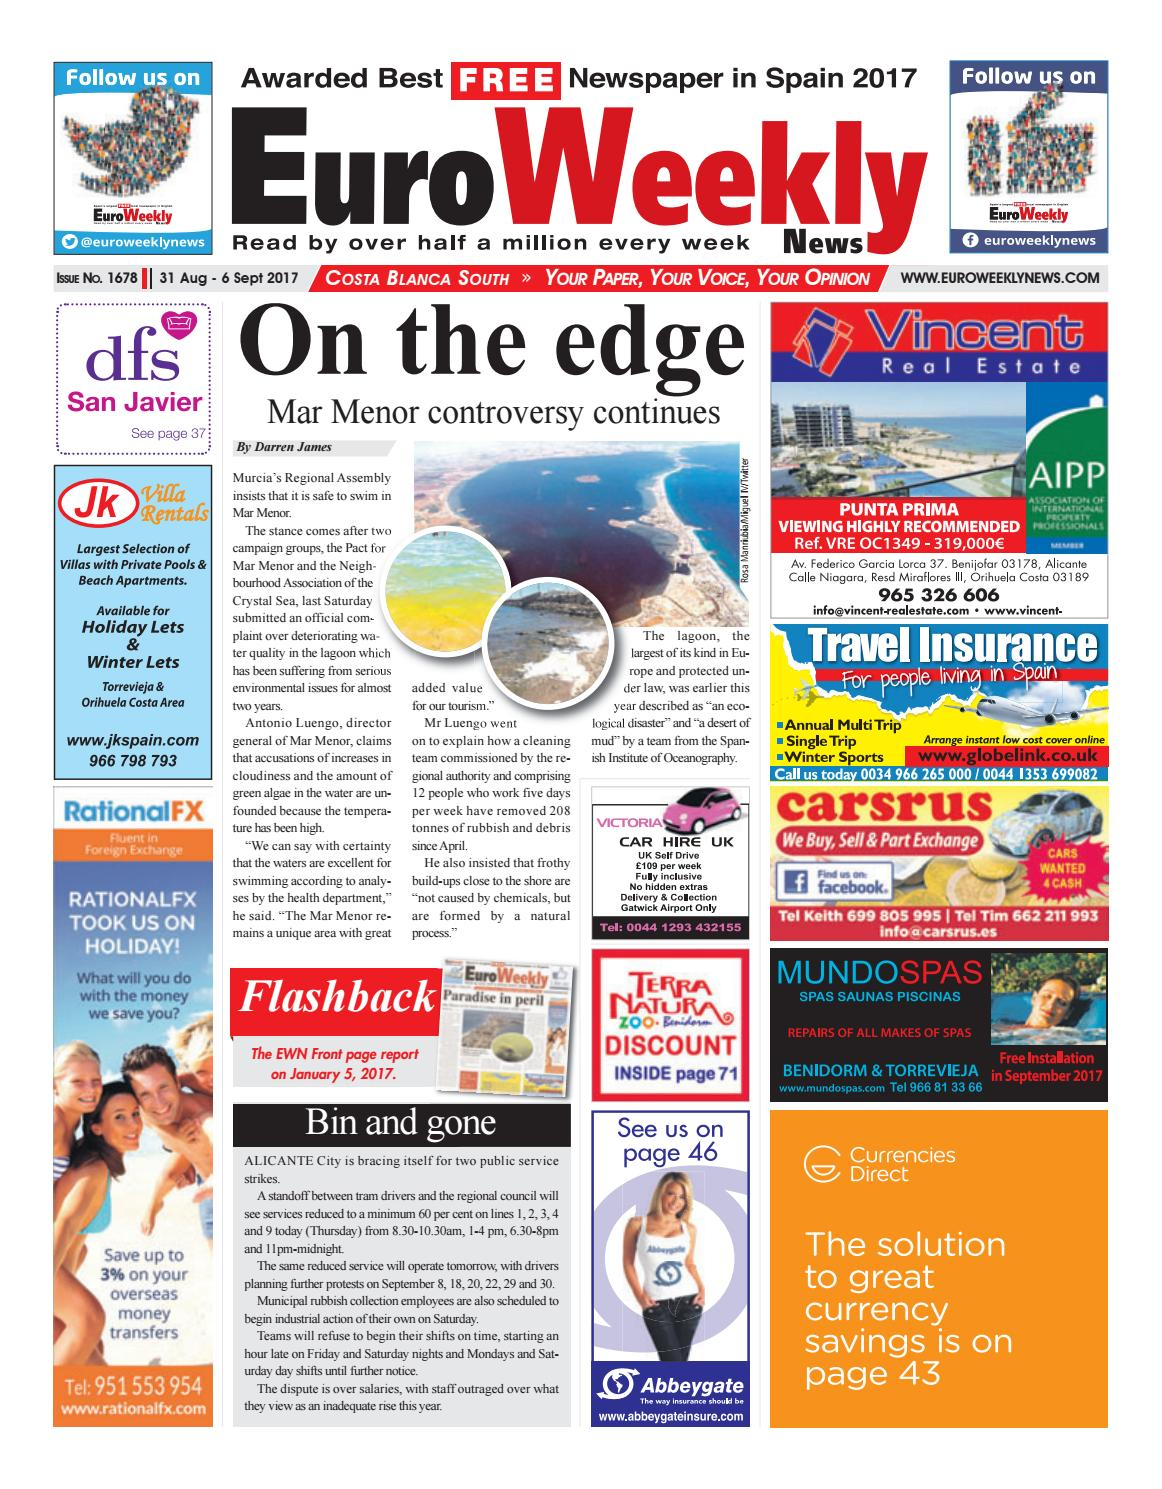 bf8a26726ee1 Euro Weekly News - Costa Blanca South 31 August – 6 September 2017 Issue  1678 by Euro Weekly News Media S.A. - issuu